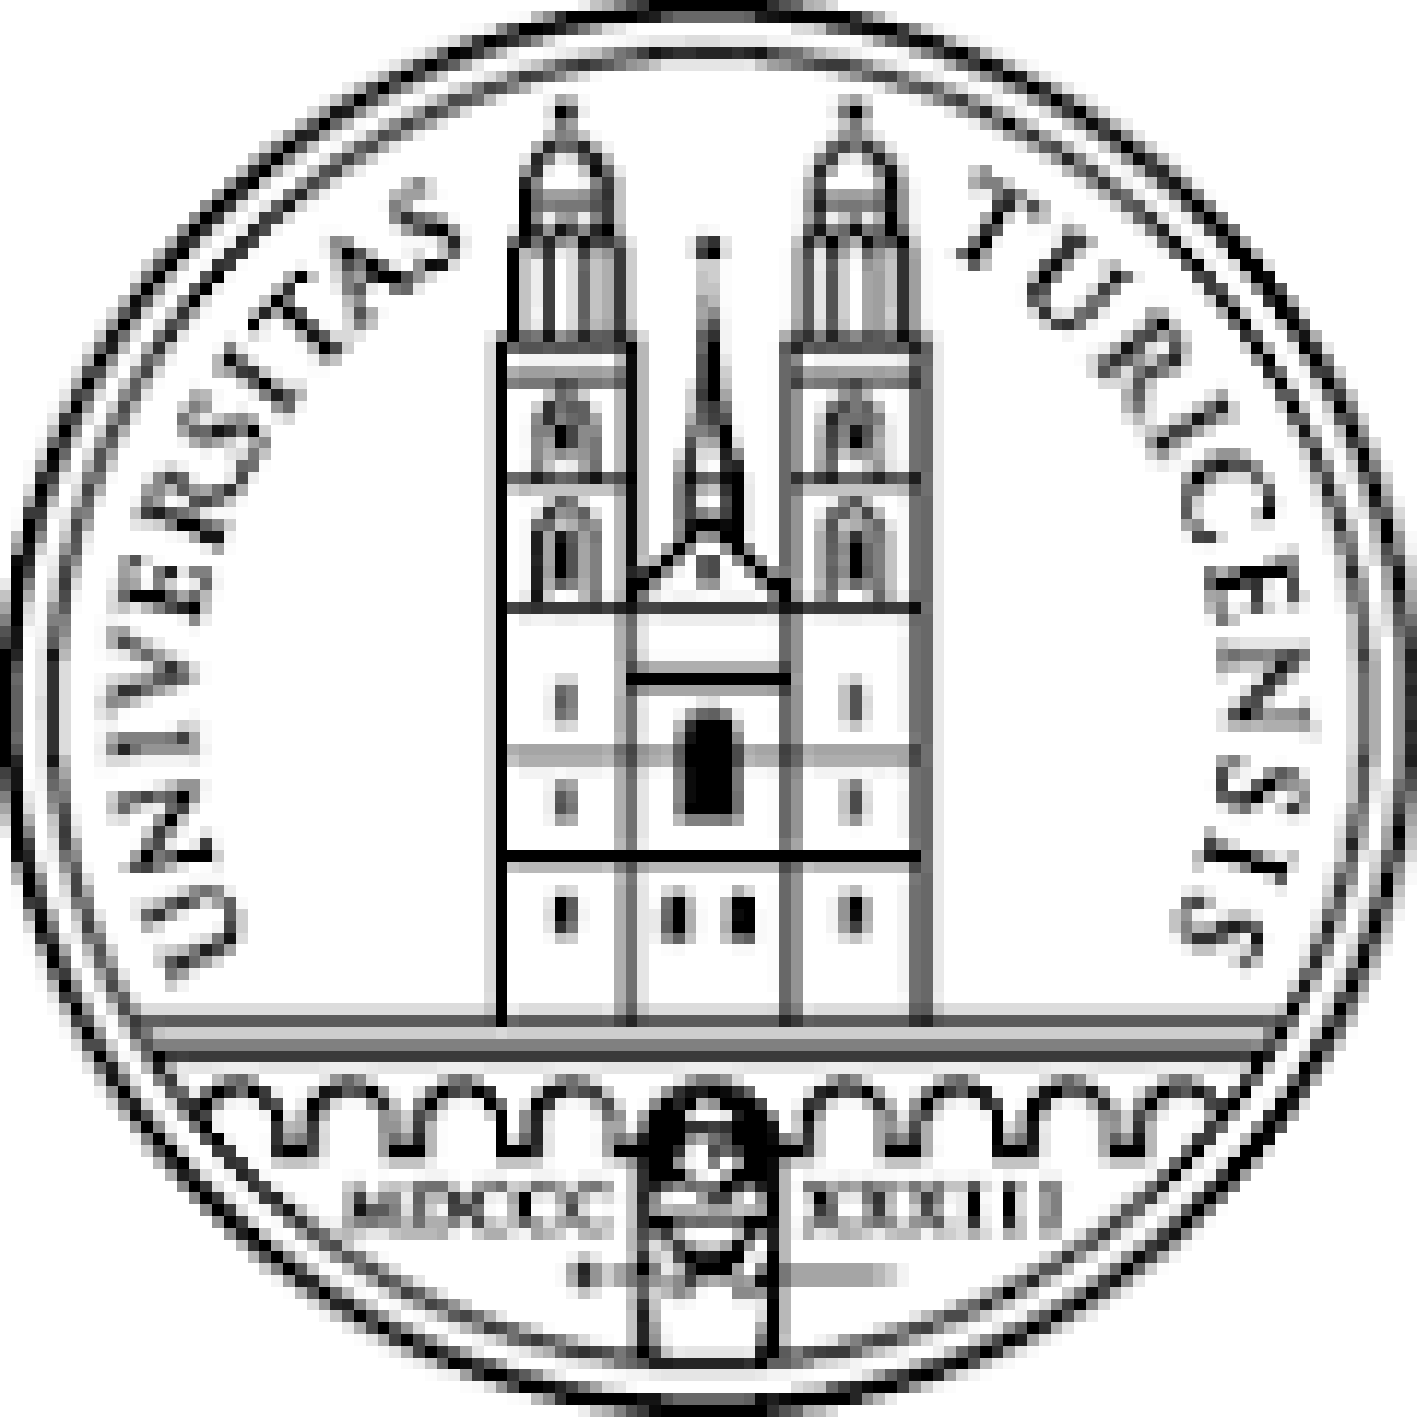 University of Zurich (UZH) (Switzerland)